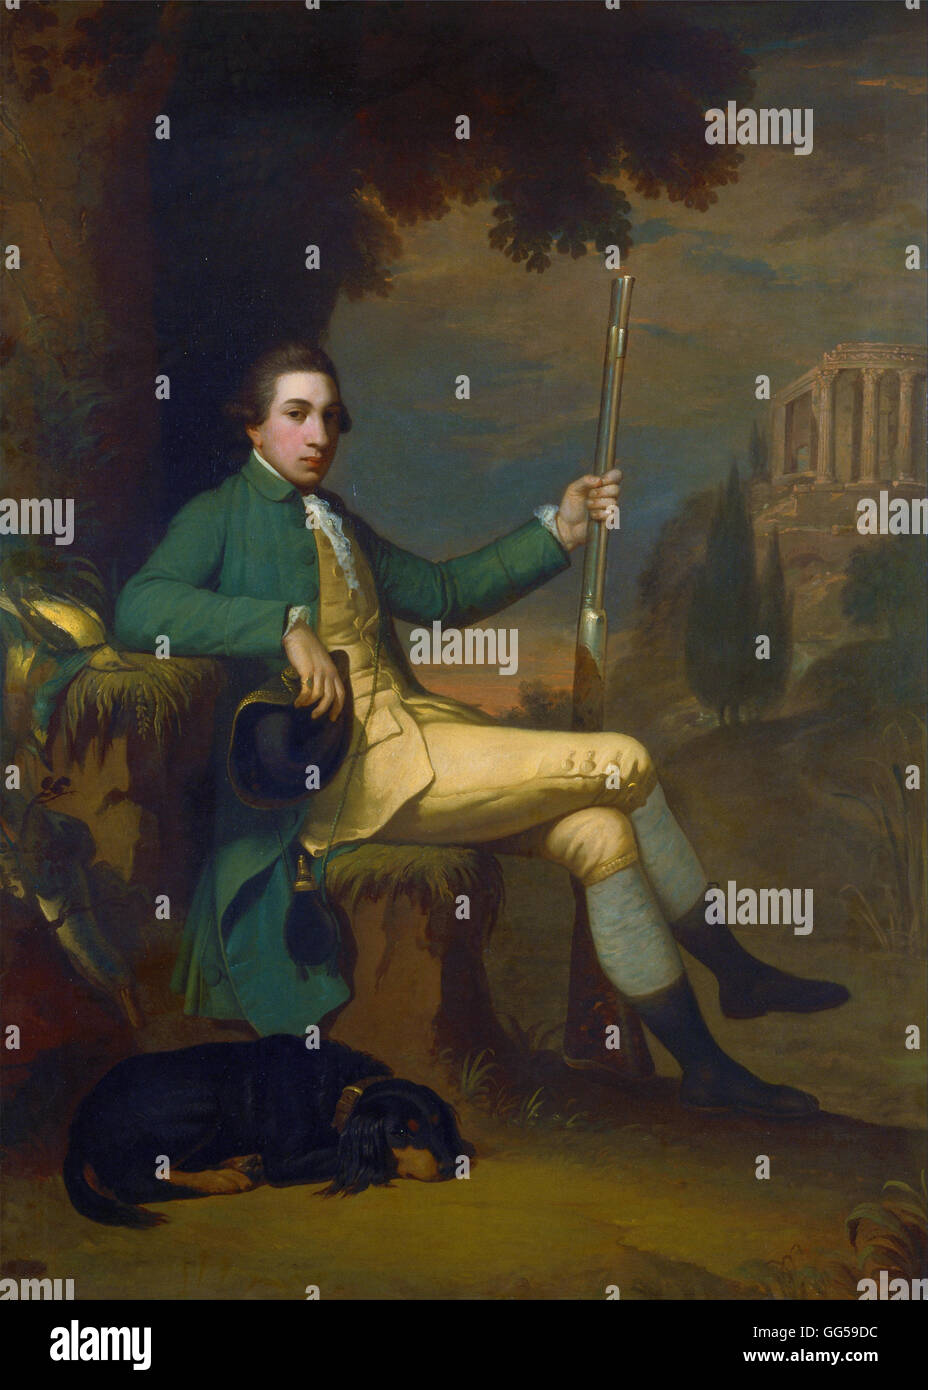 David Allan - Thomas Graham, Baron Lynedoch - Stock Image